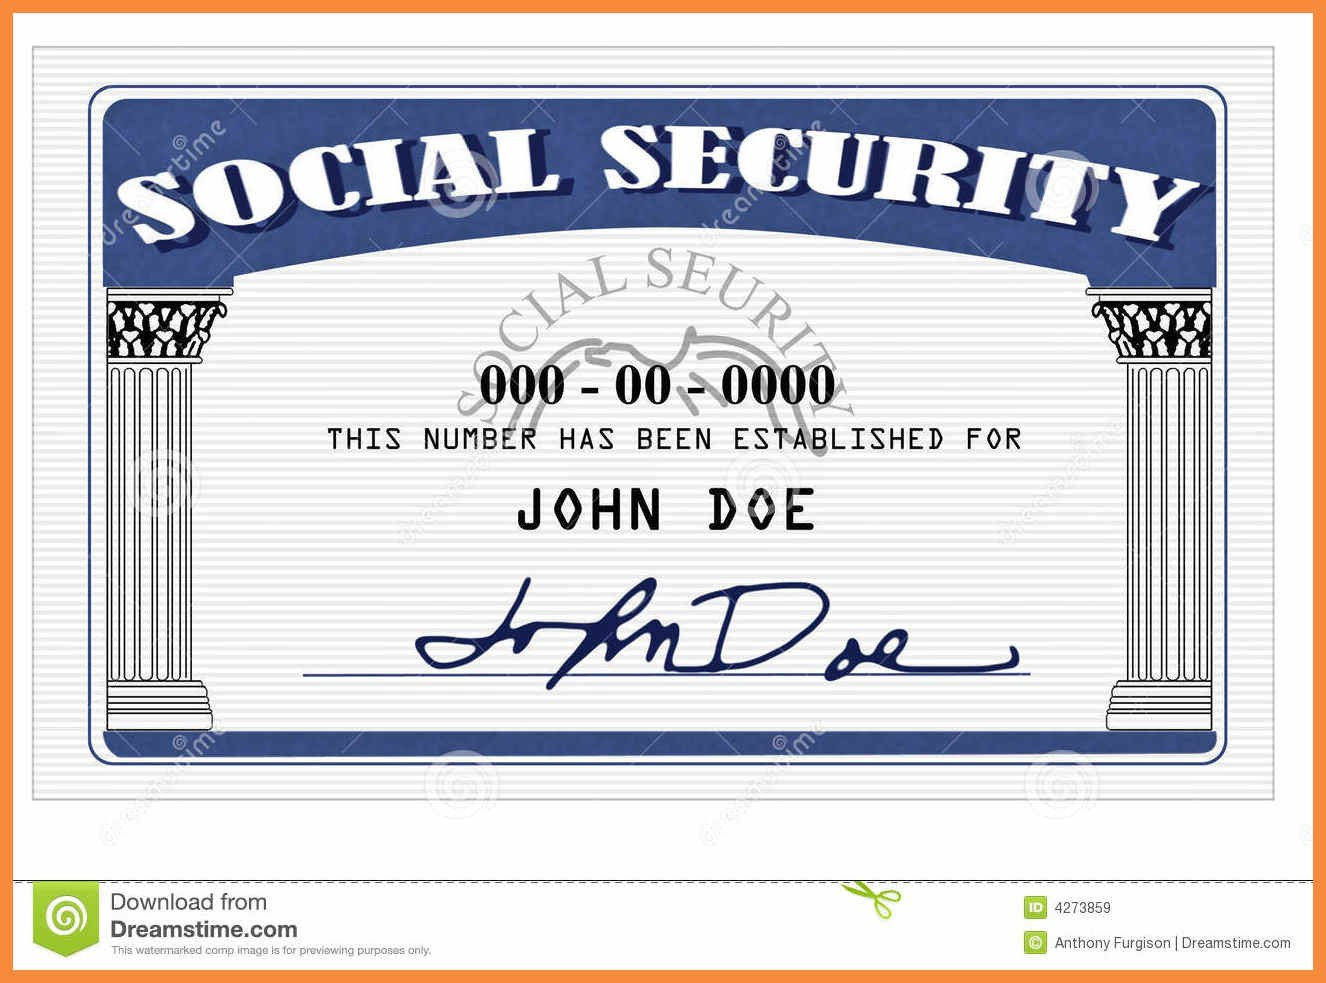 Blank Social Security Card Template  Hardbreakersthemovie Throughout Blank Social Security Card Template Download